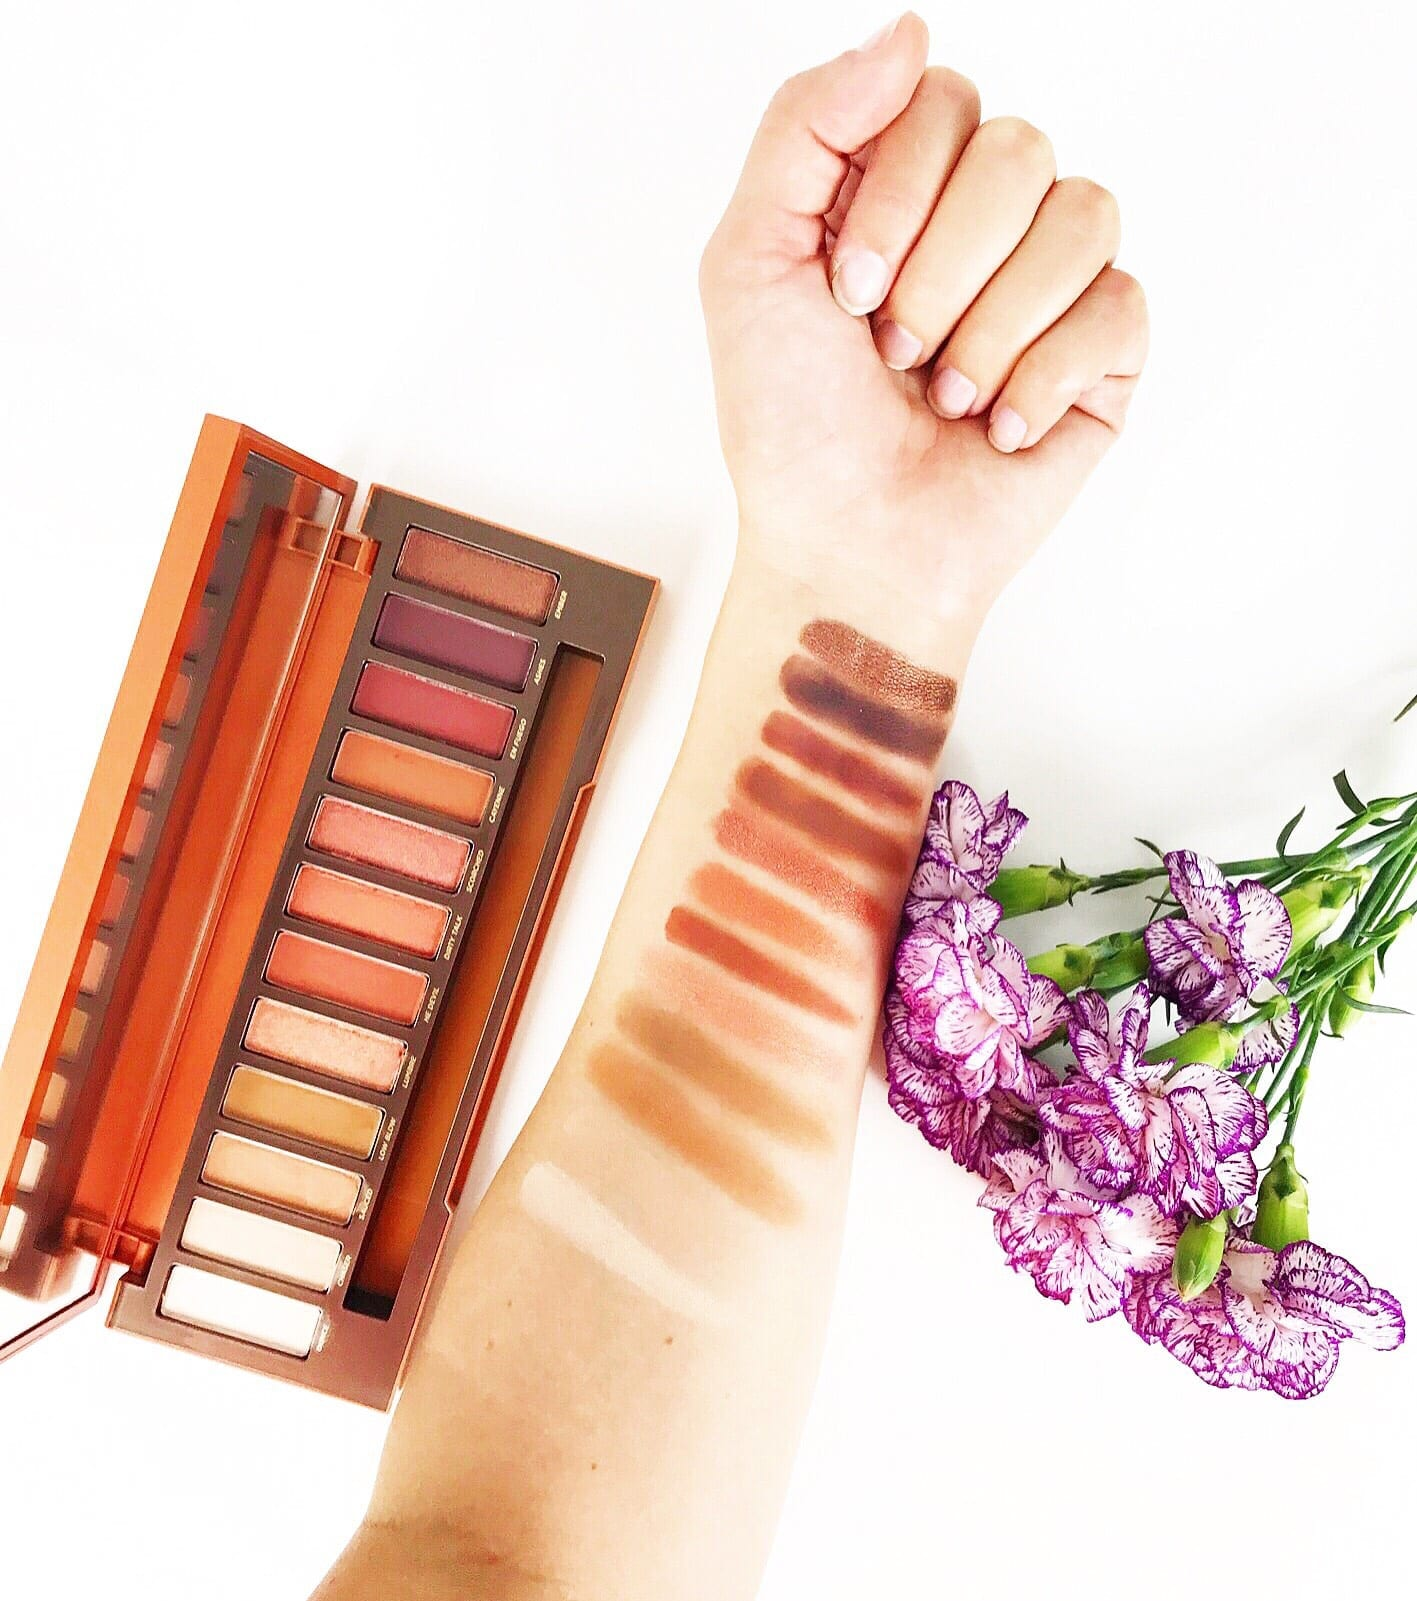 This is a photo of the swatches from the new Urban Decay Naked HEAT Palette